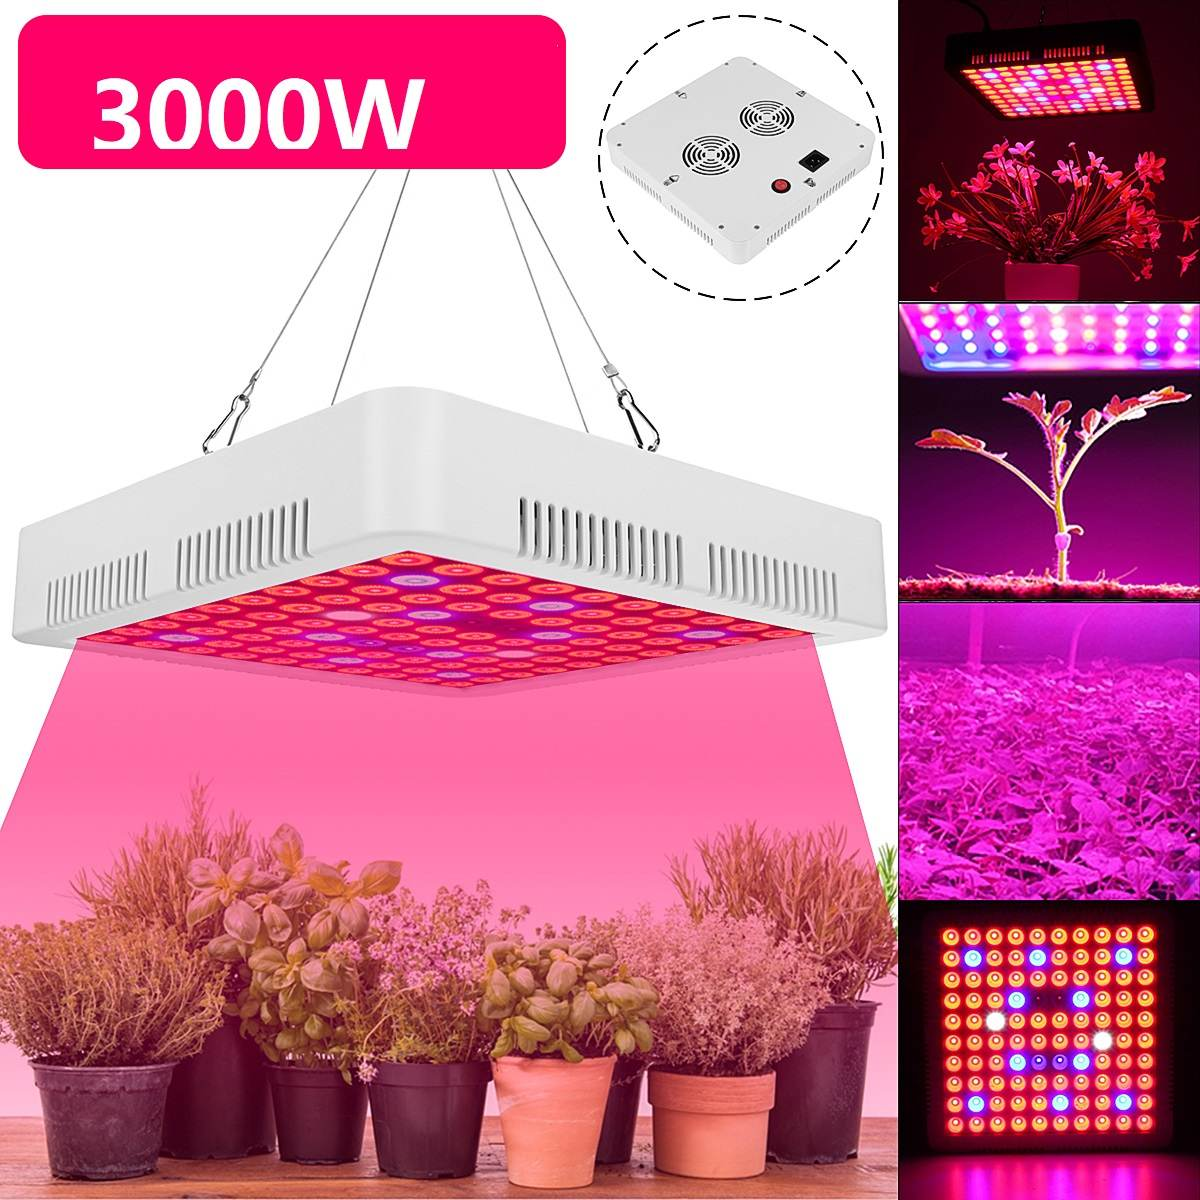 3000W LED Grow Lights Lamp Panel Hydroponic Plant Growing Full Spectrum For Veg Flower Indoor Plant Seeds AC85-265V Black/White(China)